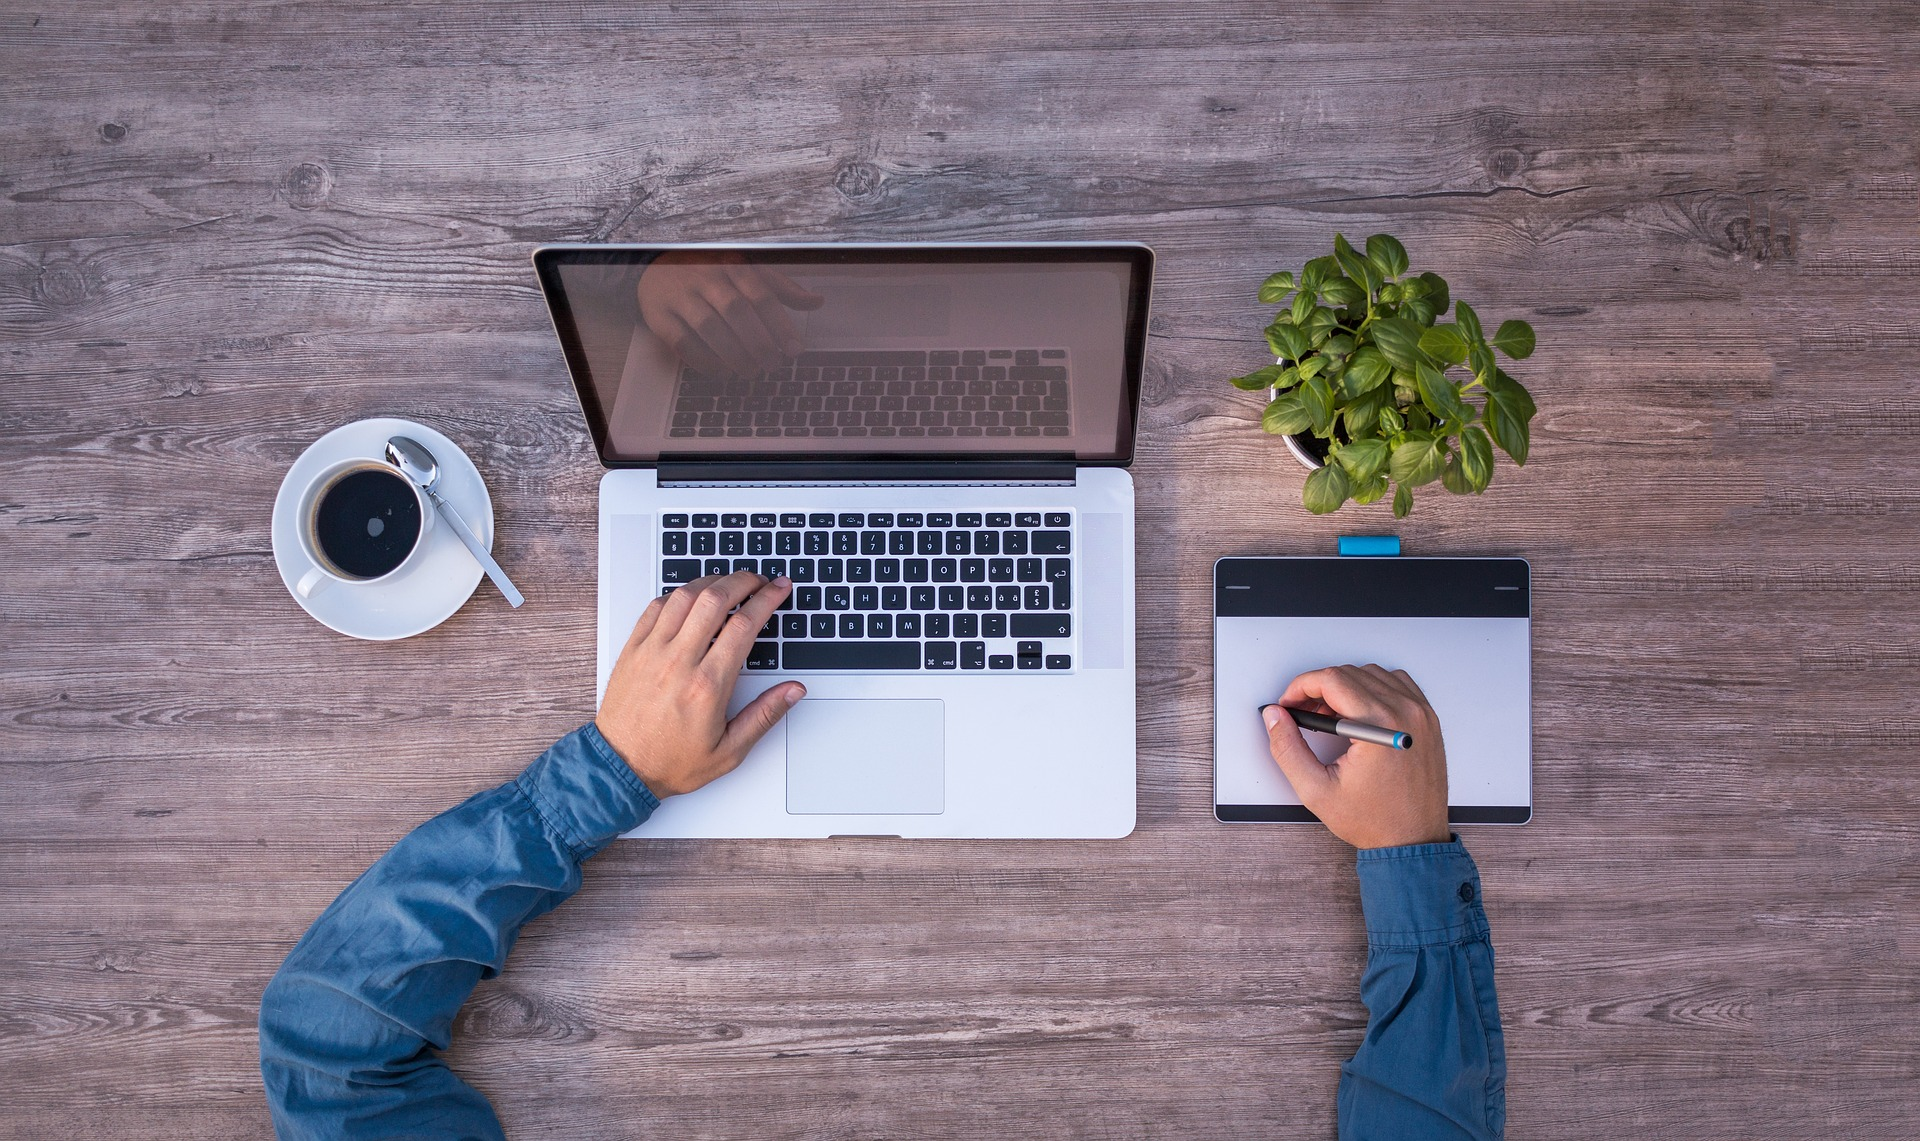 How to make working at home easier for parents